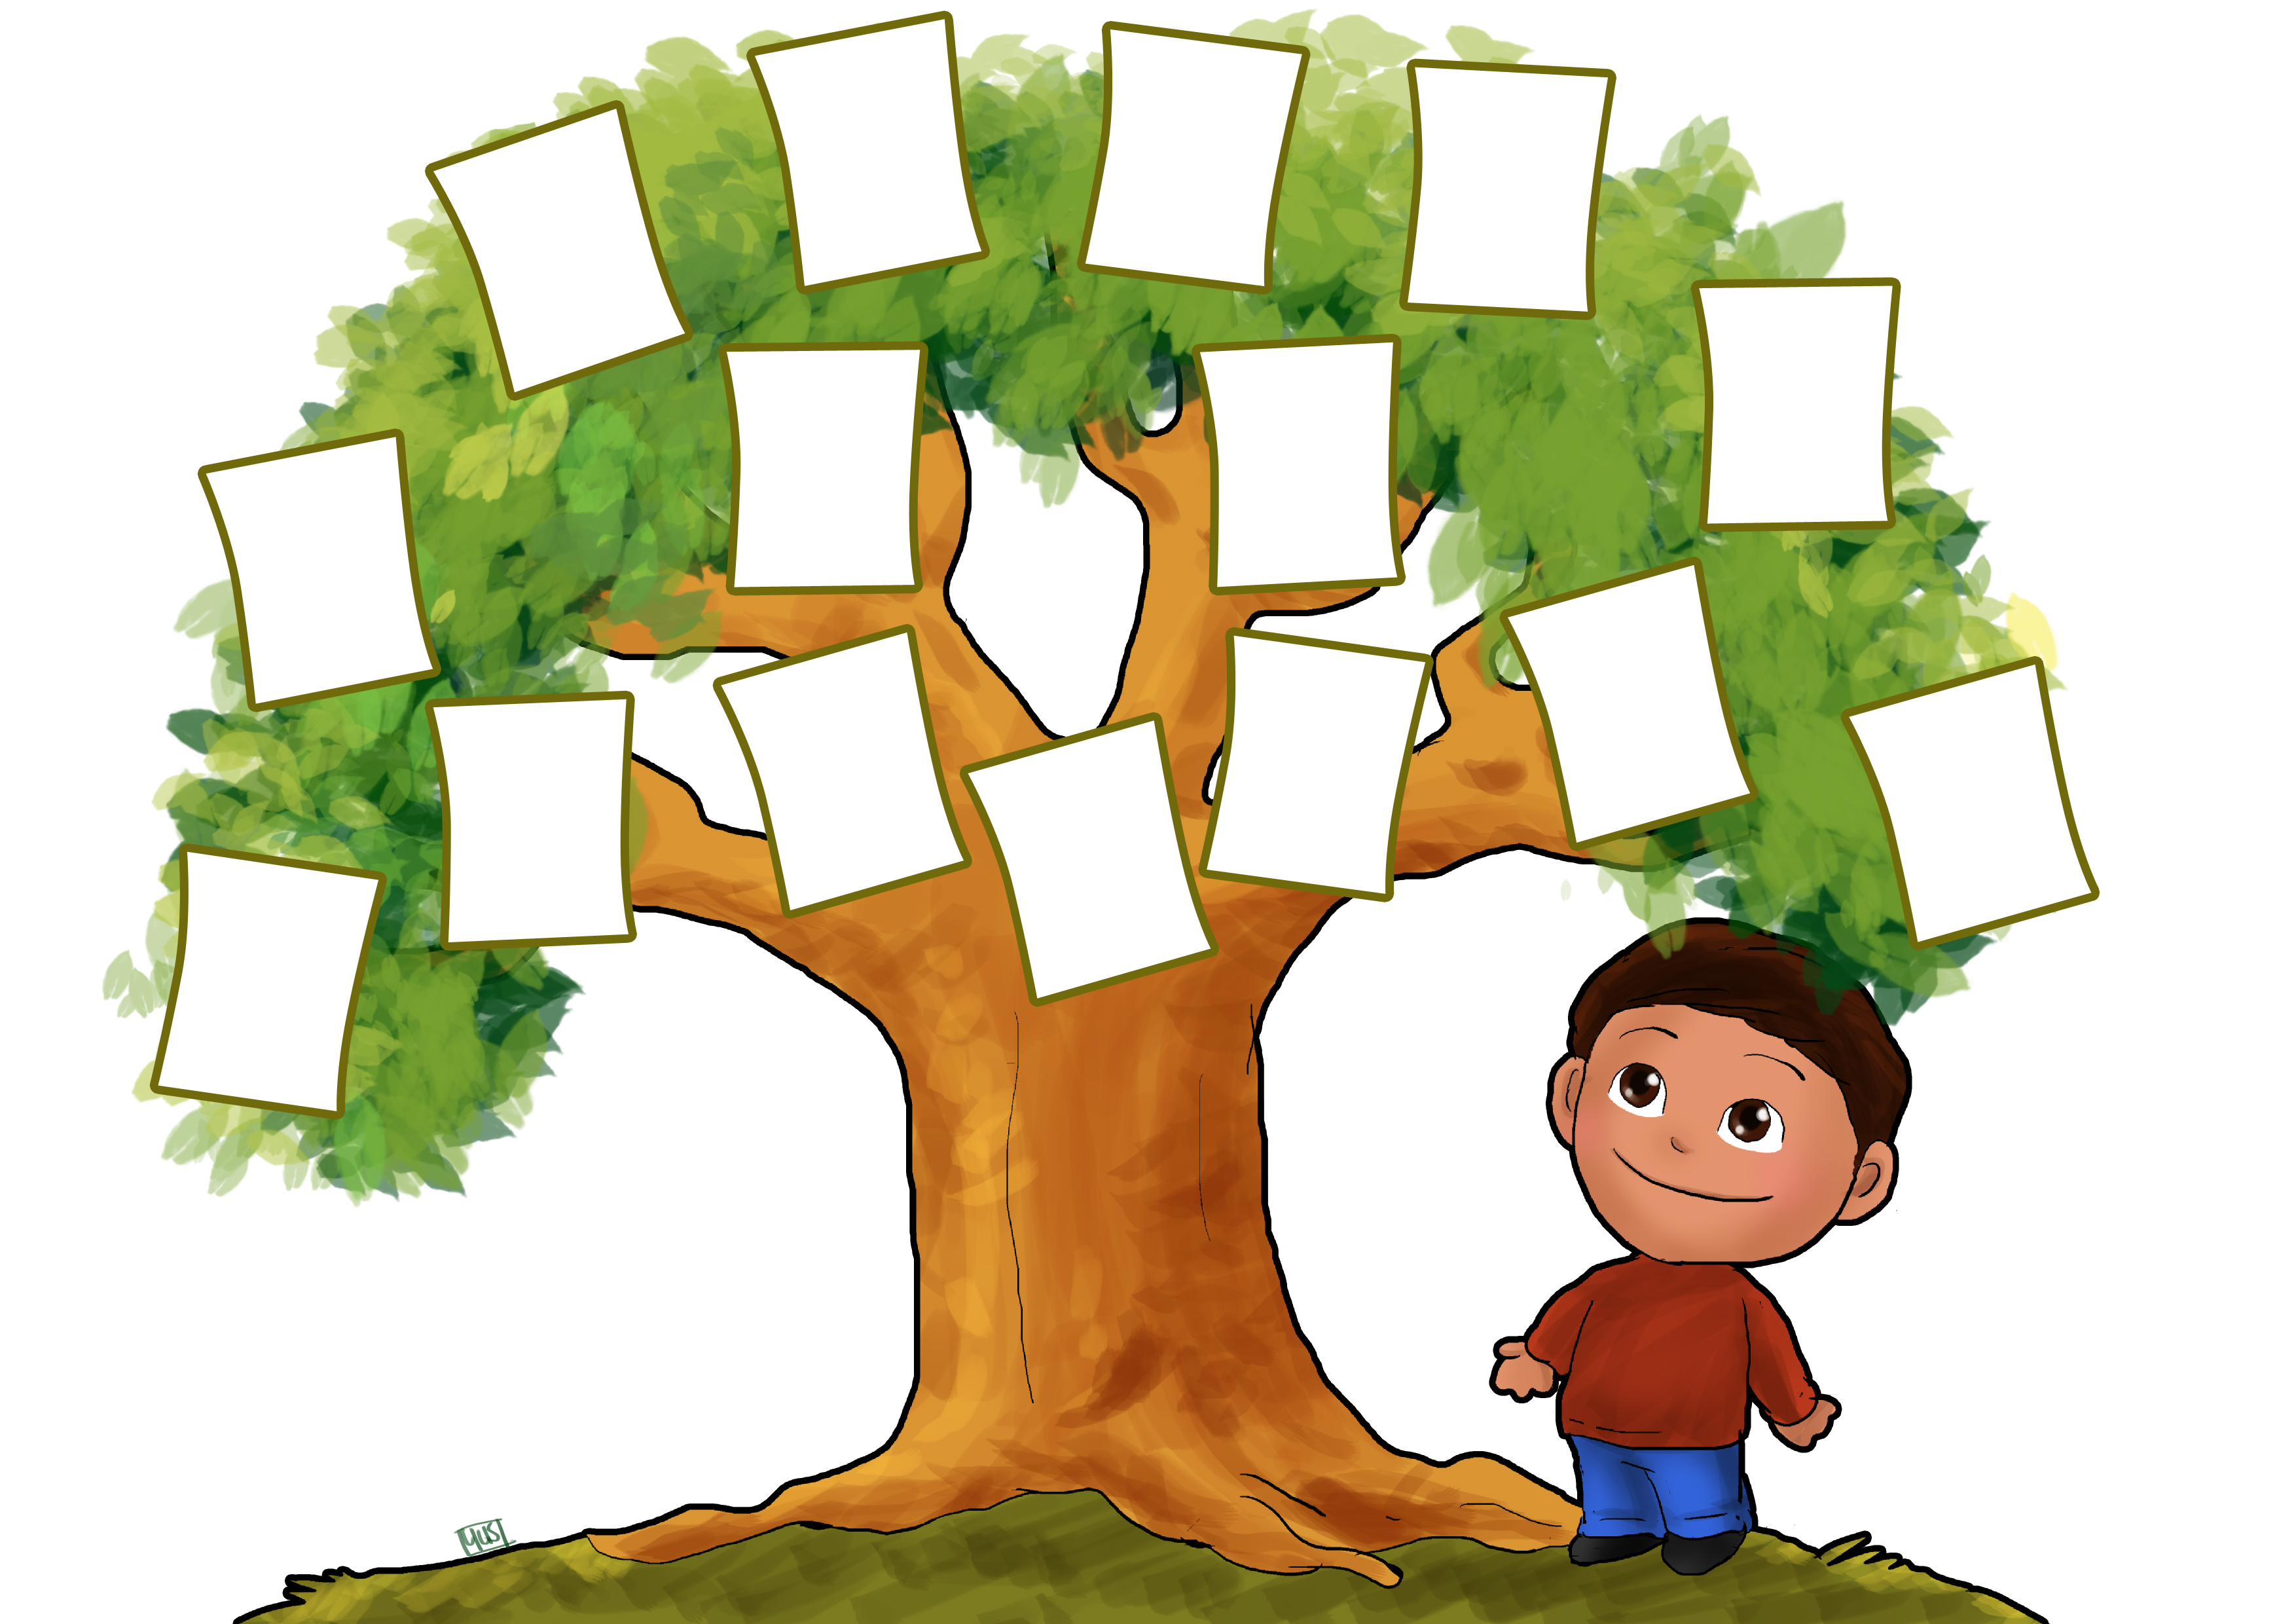 Worksheets Family Tree Worksheet For Kids family tree printable clipart panda free images clipart